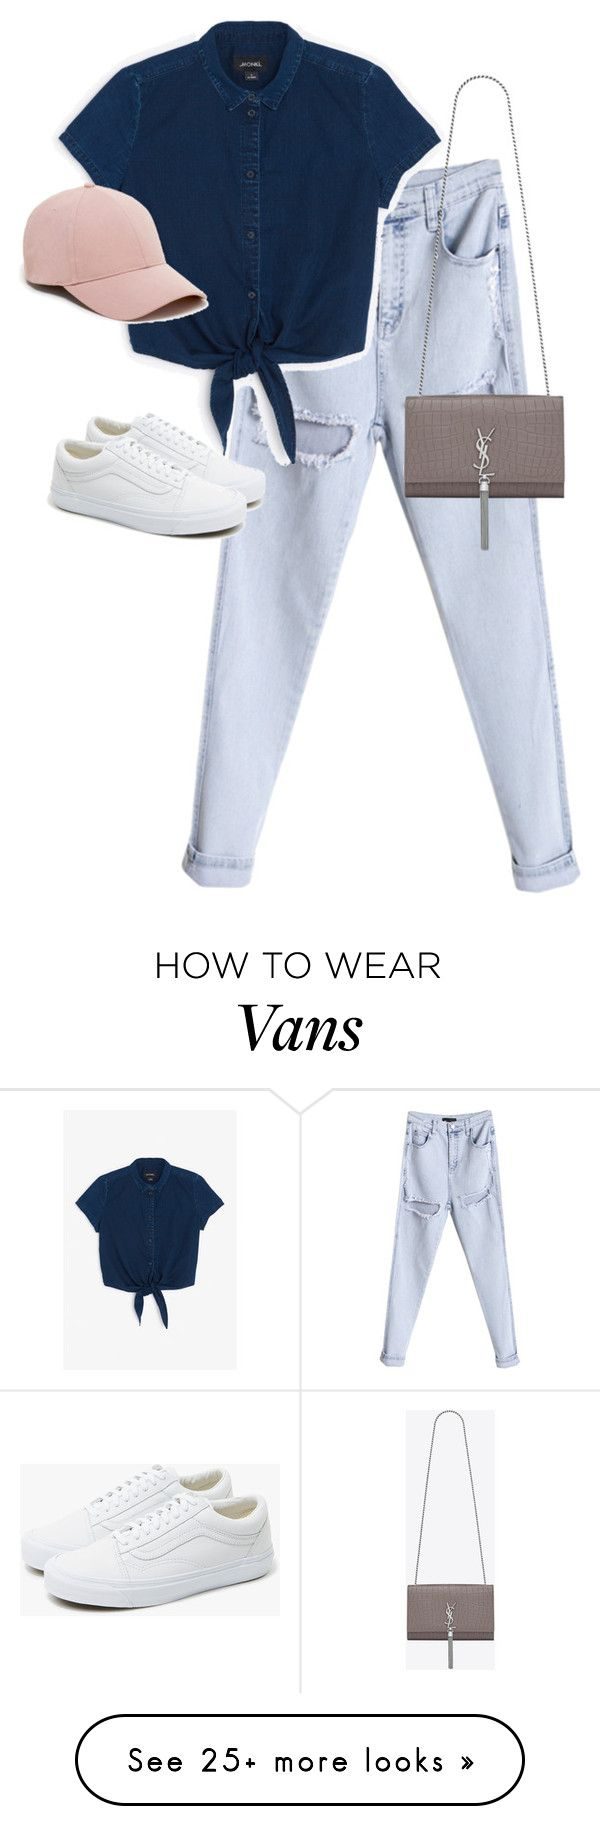 """""""Untitled #13208"""" by alexsrogers on Polyvore featuring Monki, Sole Society, Vans and Yves Saint Laurent"""